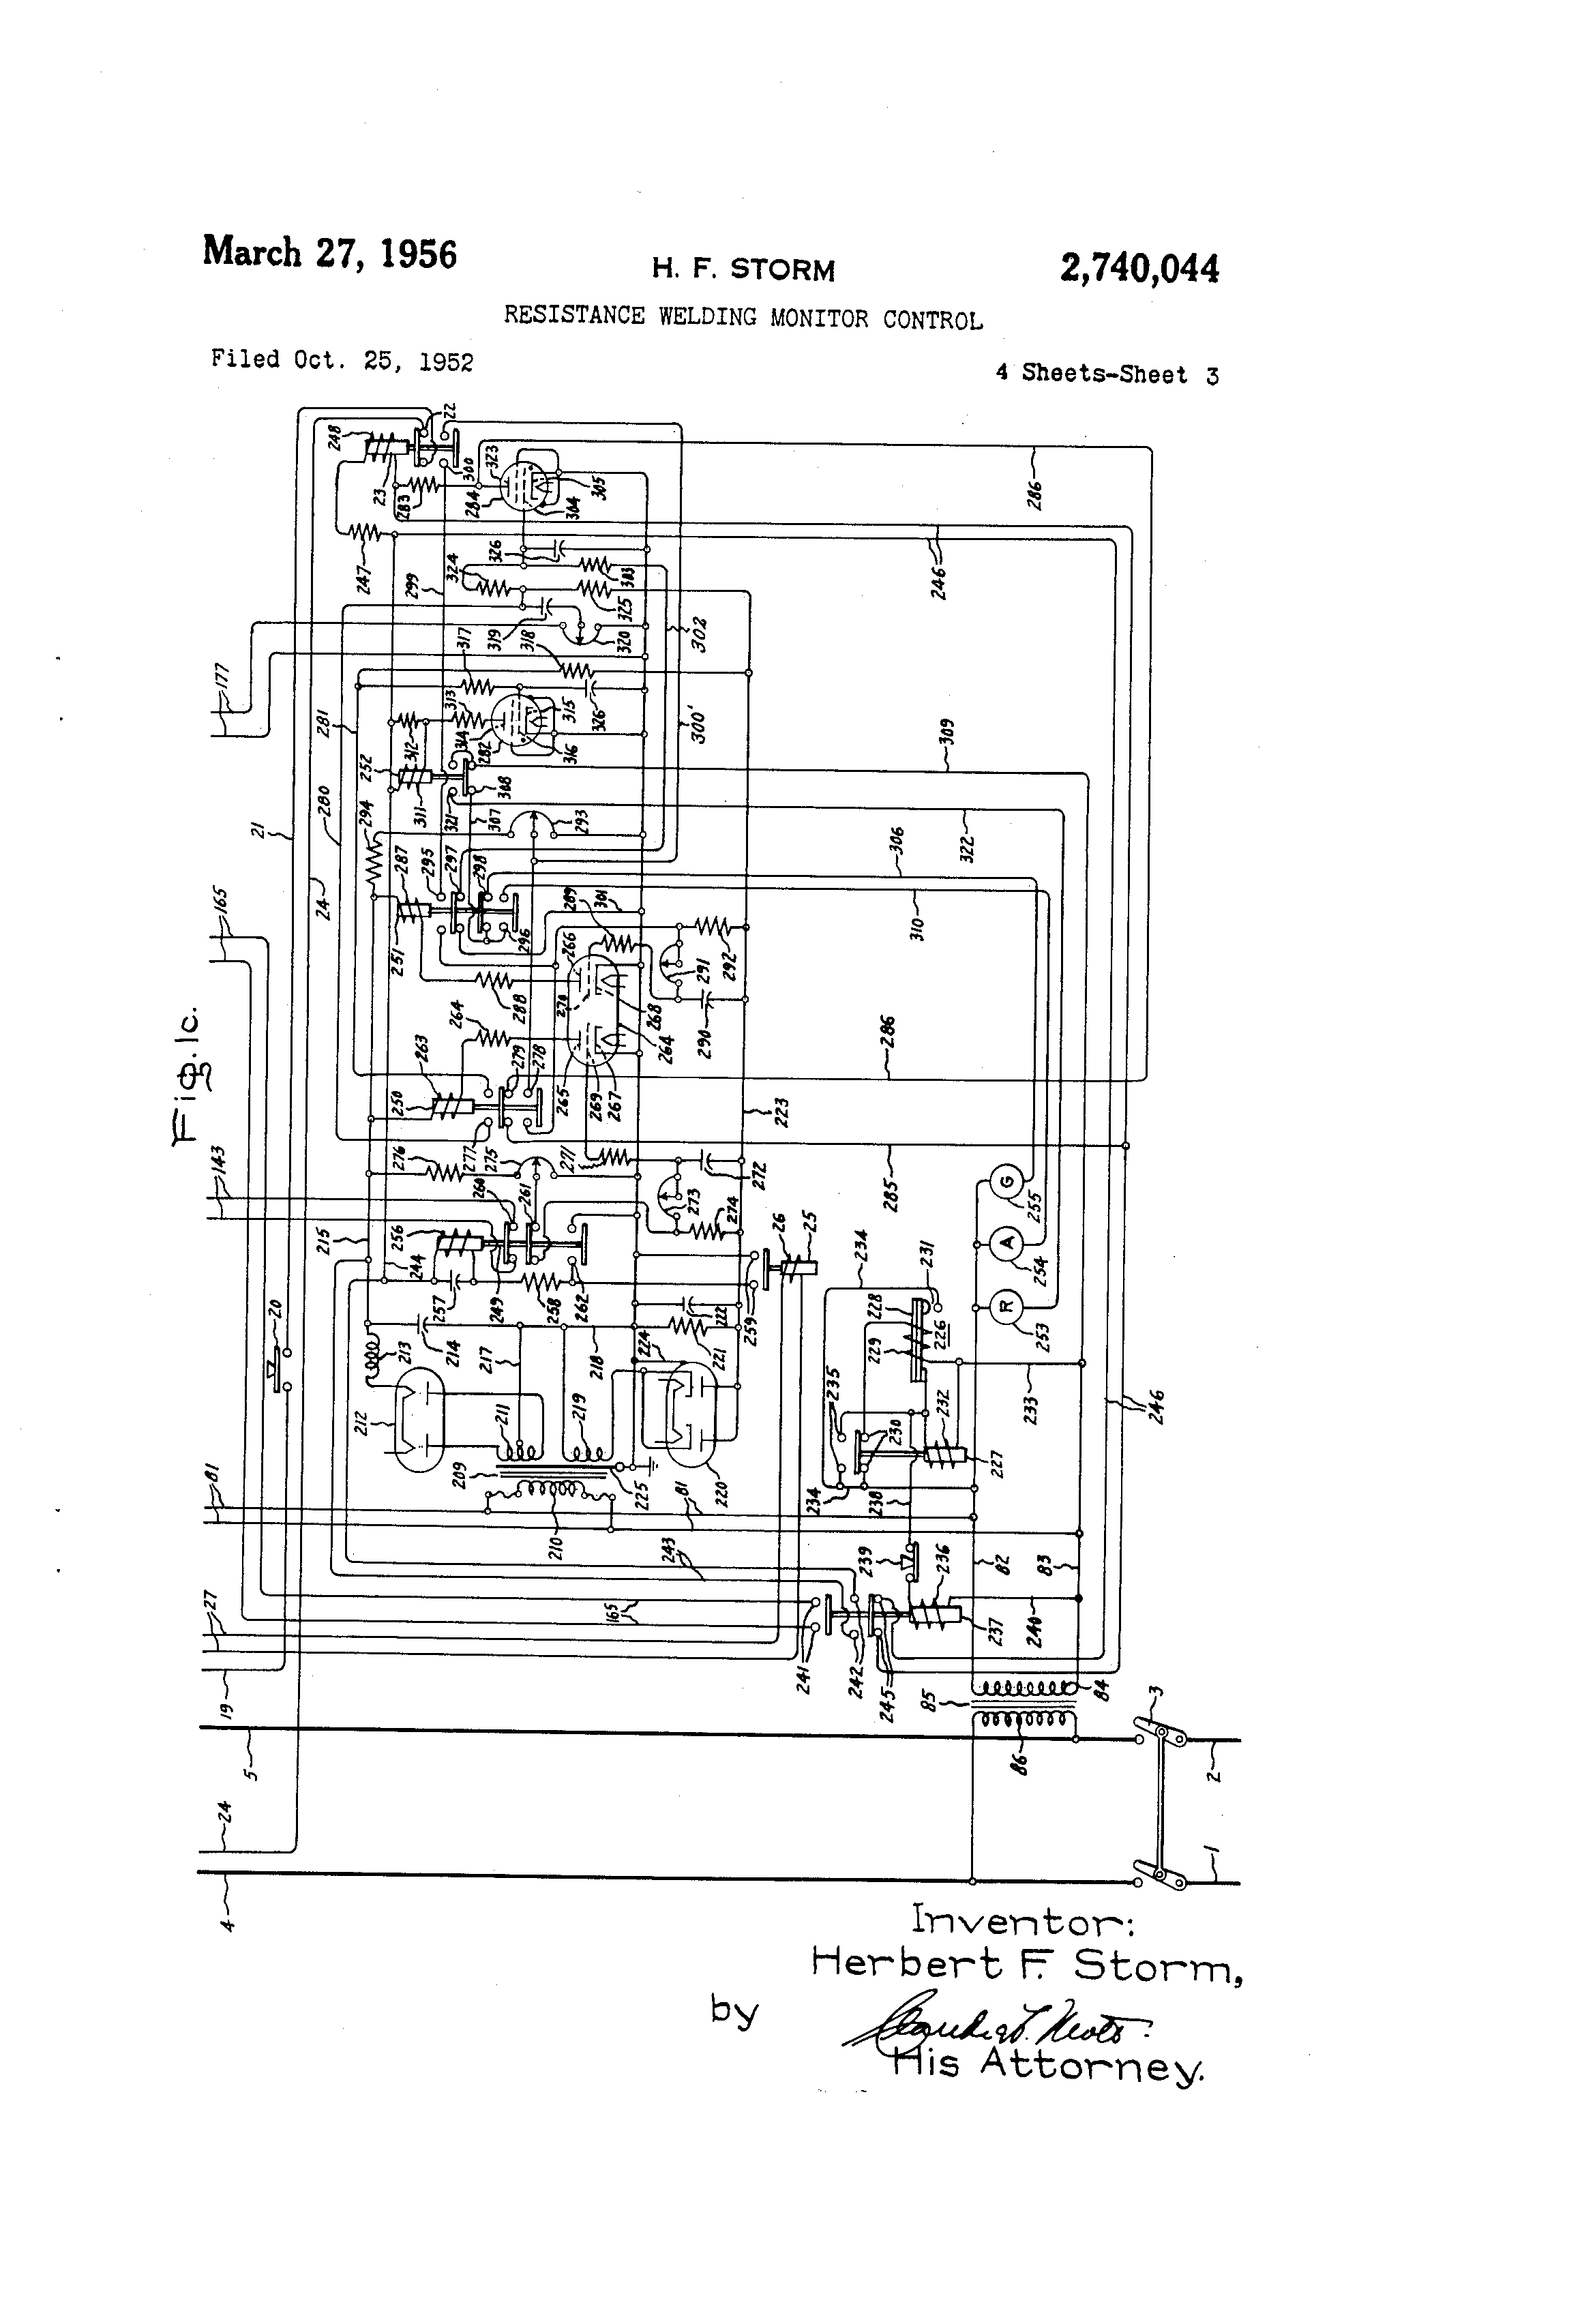 Brevet Us2740044 Resistance Welding Monitor Control Google Brevets Rc Circuitsresistor And Capacitor In Series Patent Drawing